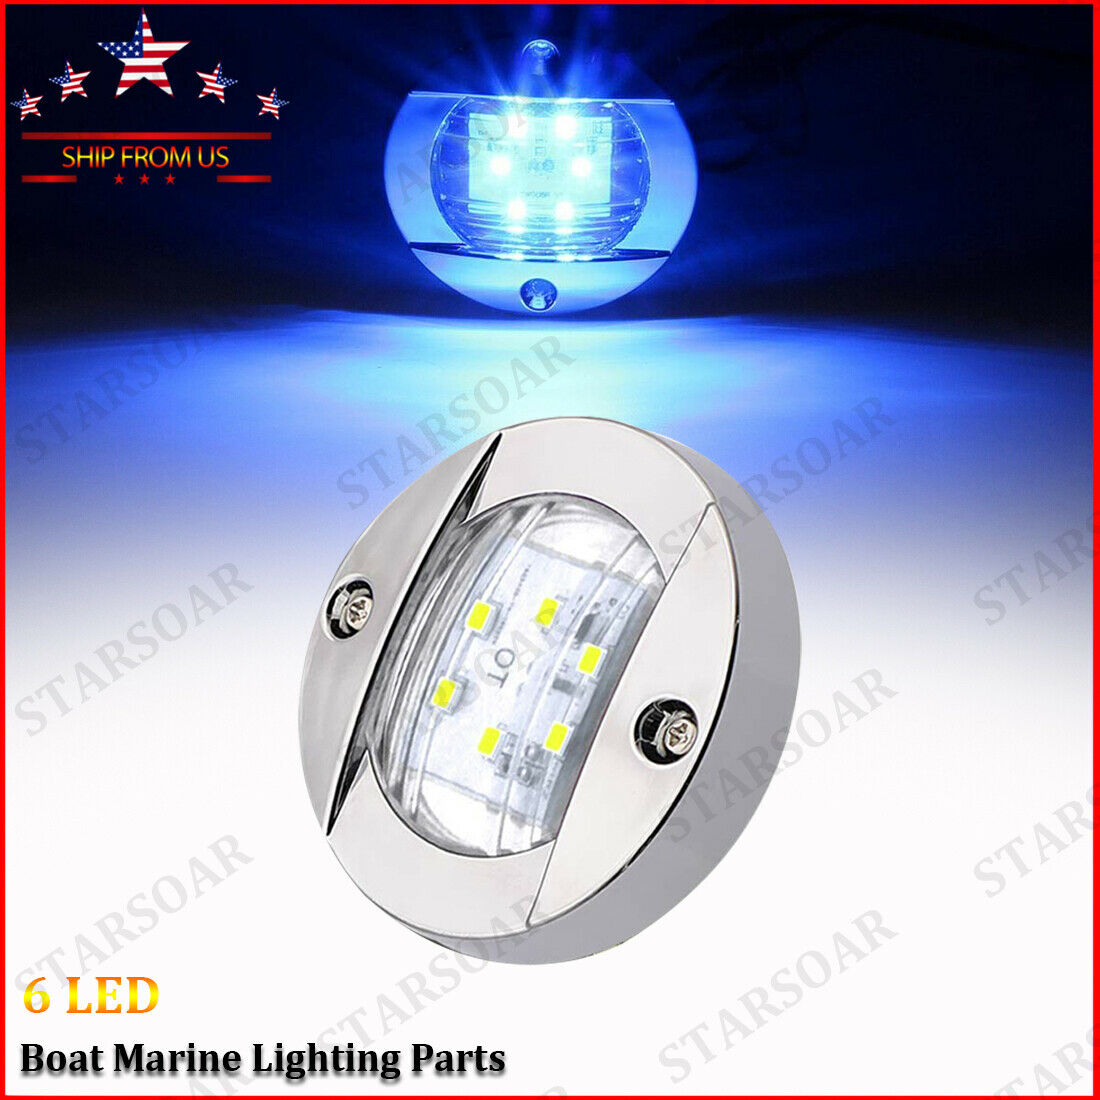 STAINLESS STEEL TRANSOM FOR BOATS NAVIGATION LED STERN LIGHT